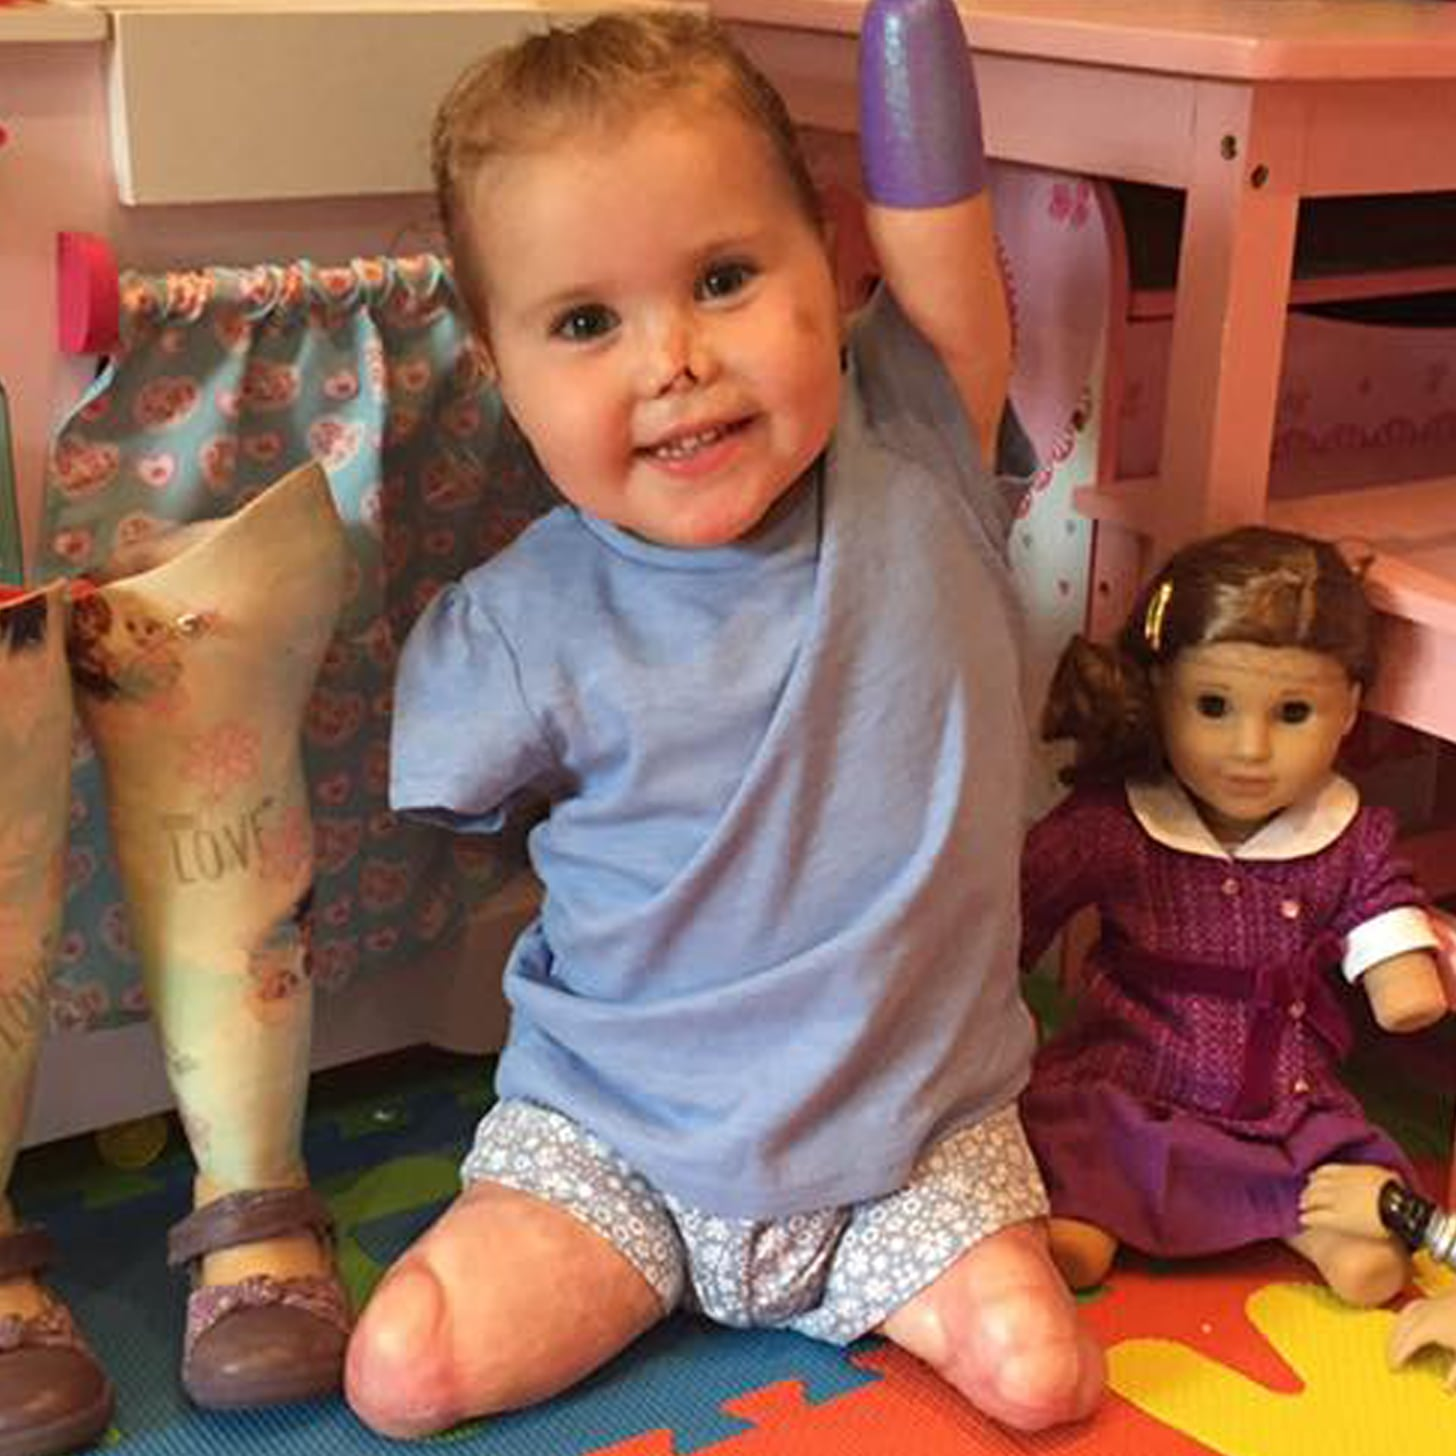 quadruple amputee toddler gets american girl doll video - Ameeican Girl Doll